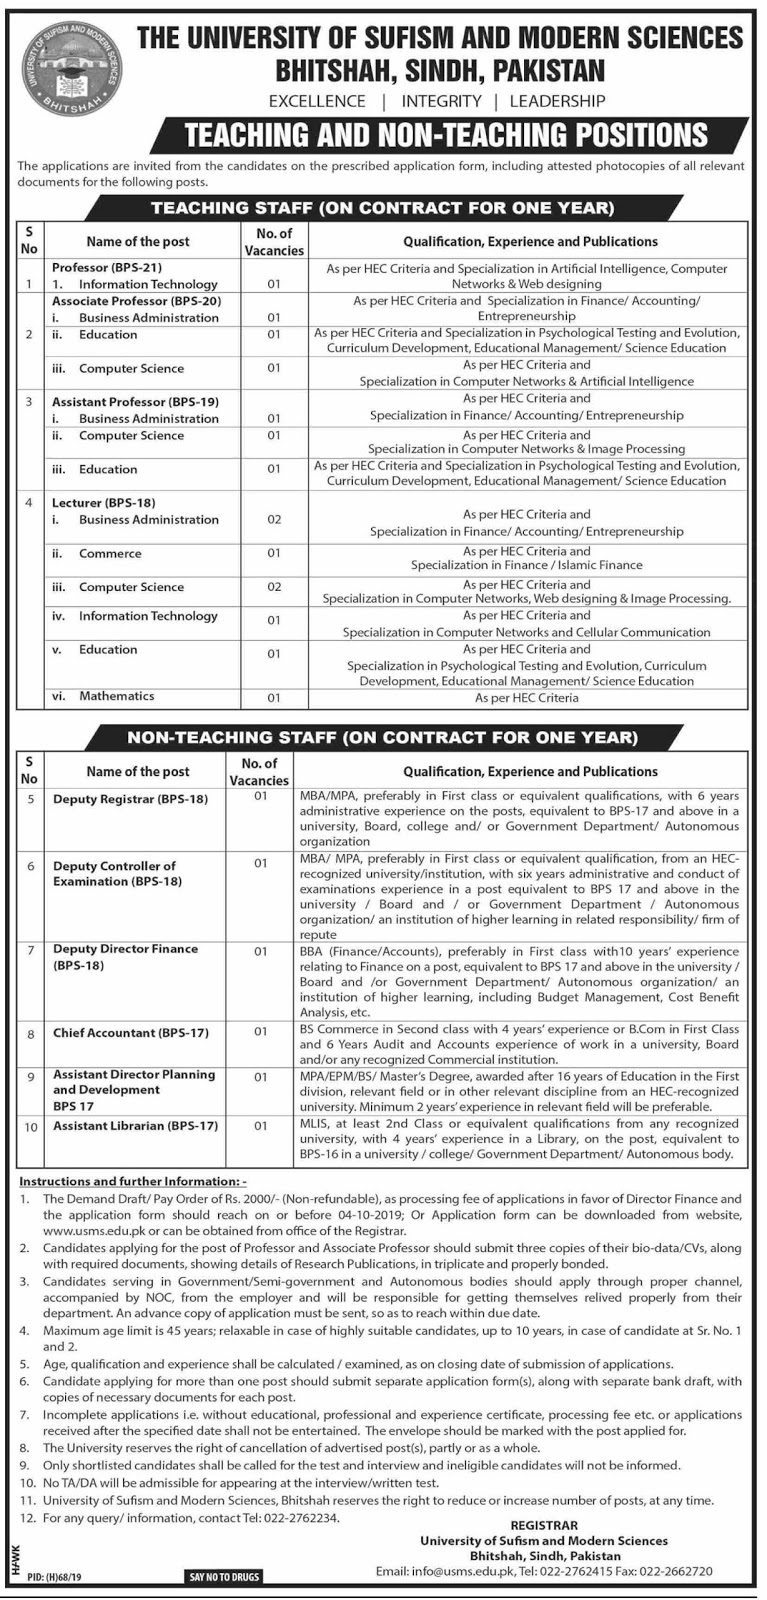 Latest Jobs in University of Sufism & Modern Sciences, Bhitshah Sindh